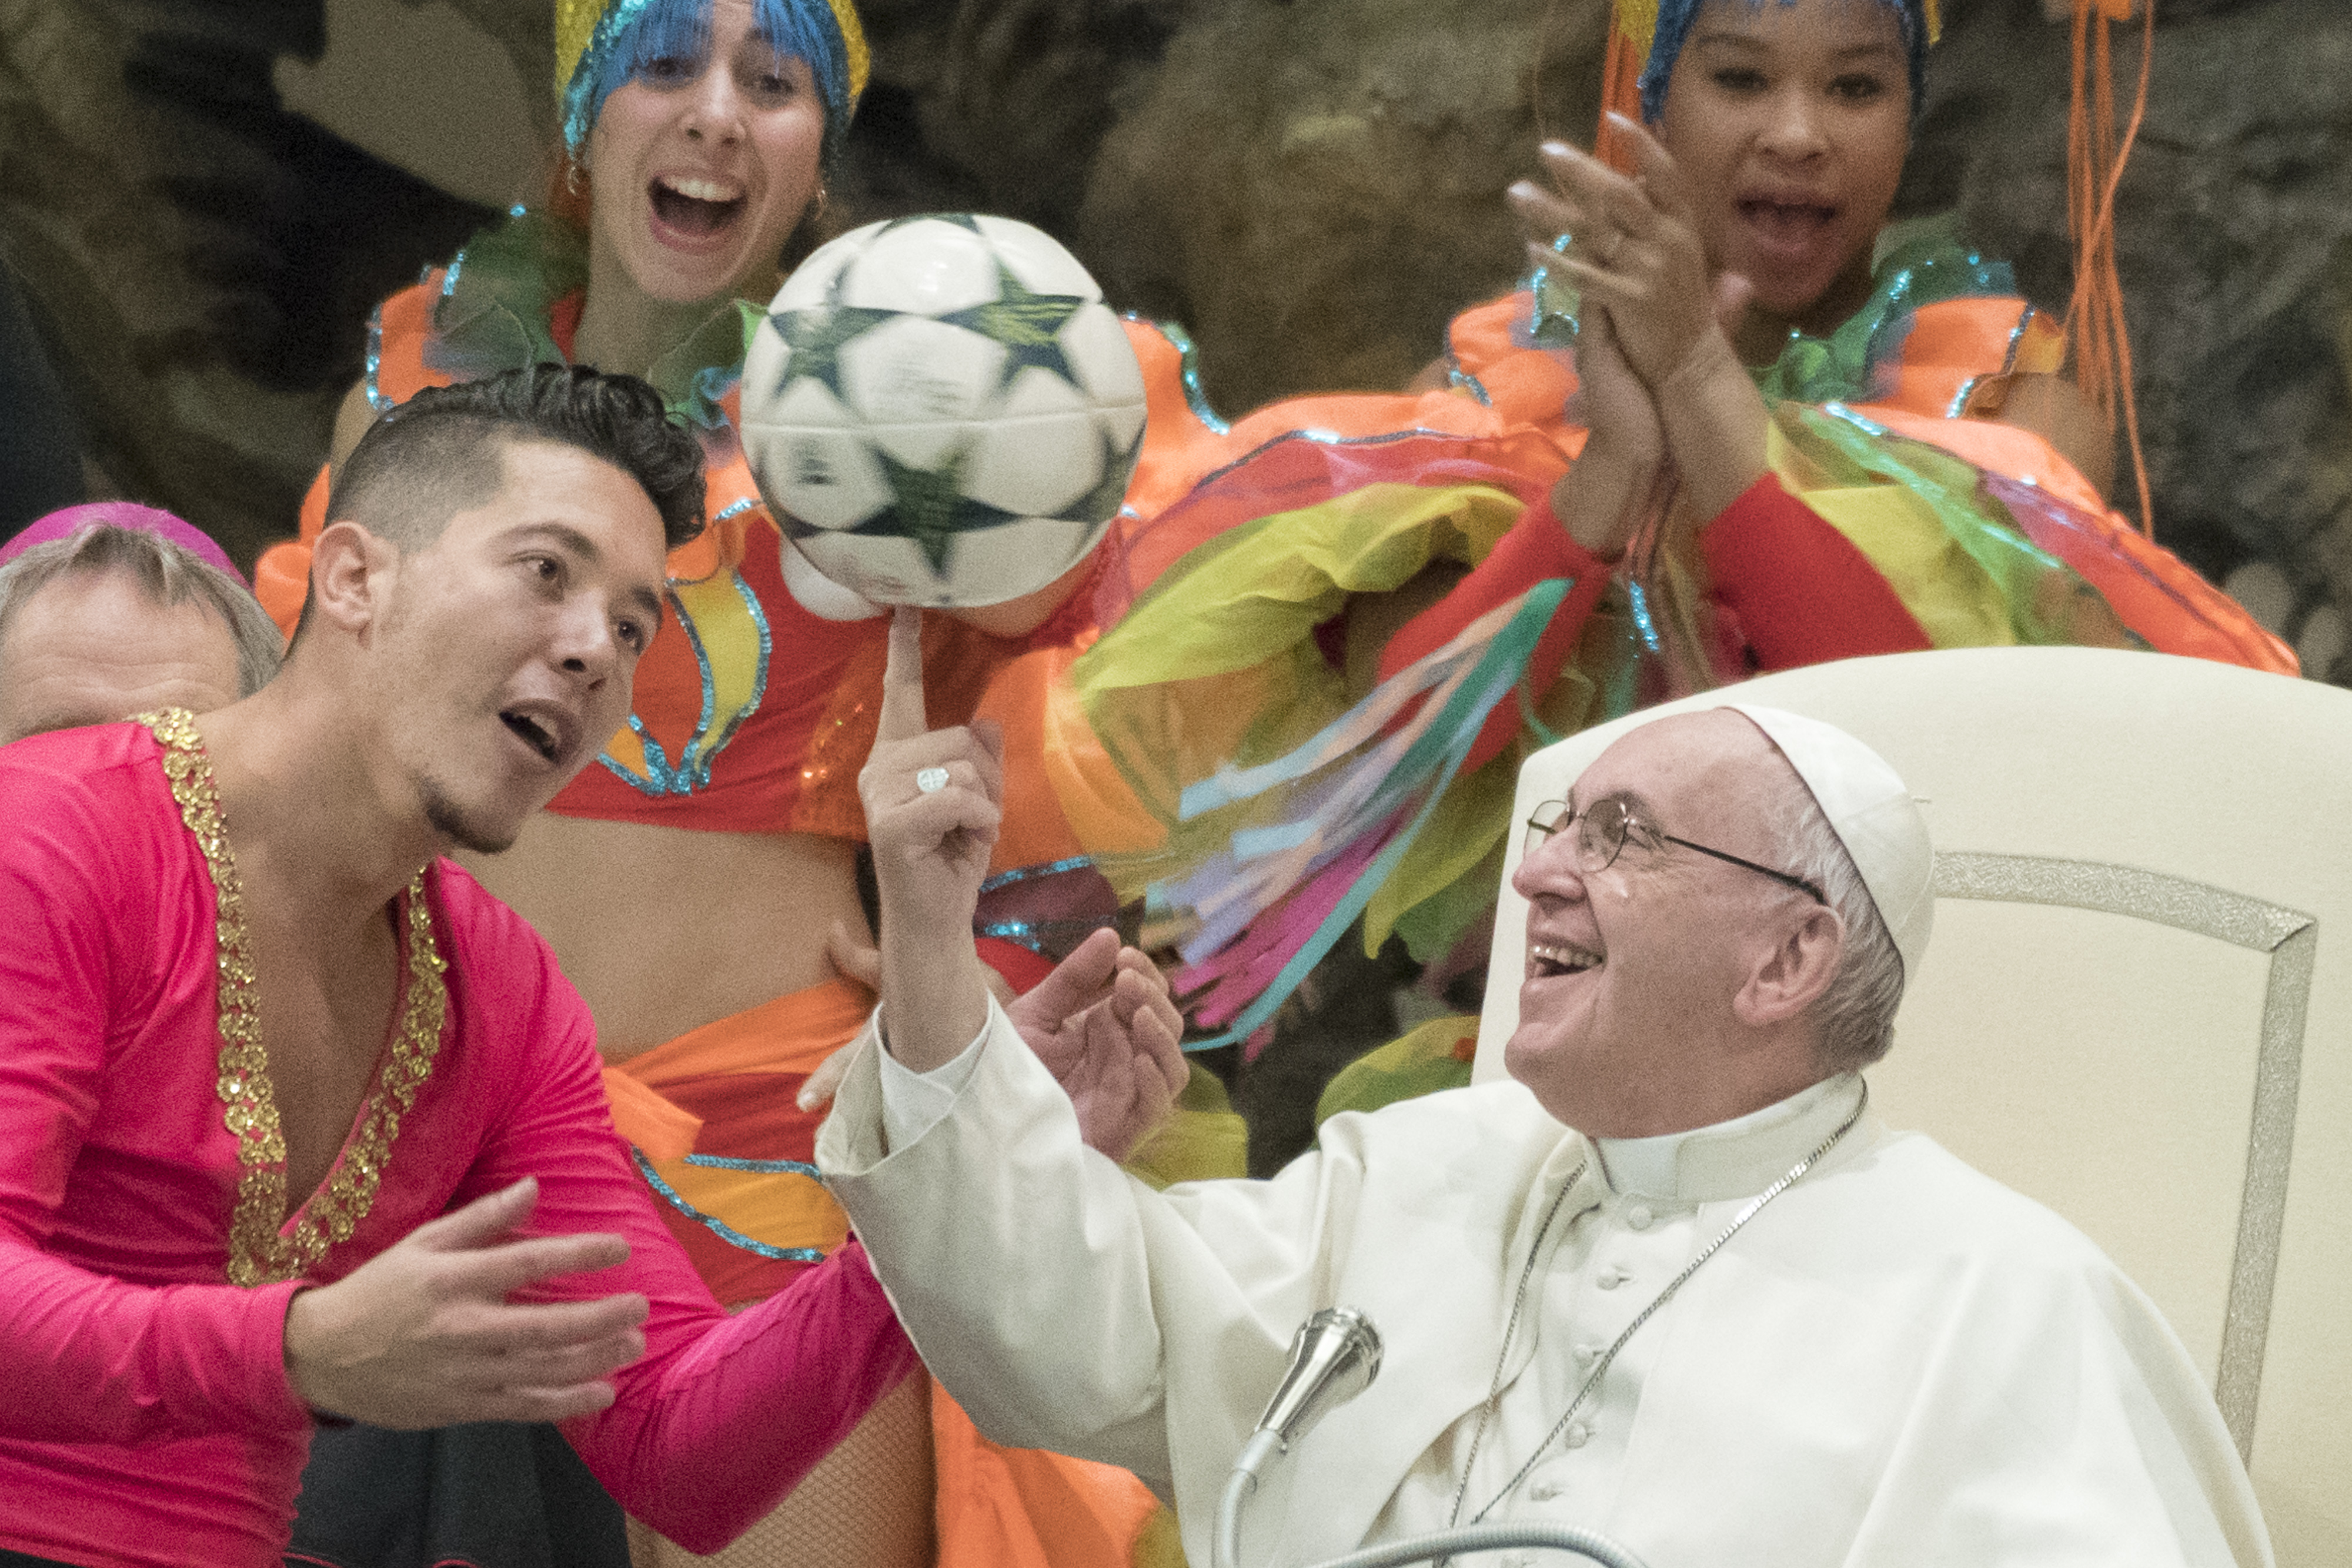 The Pope Soccer Ball Meme Is The Perfect Metaphor For A Broken